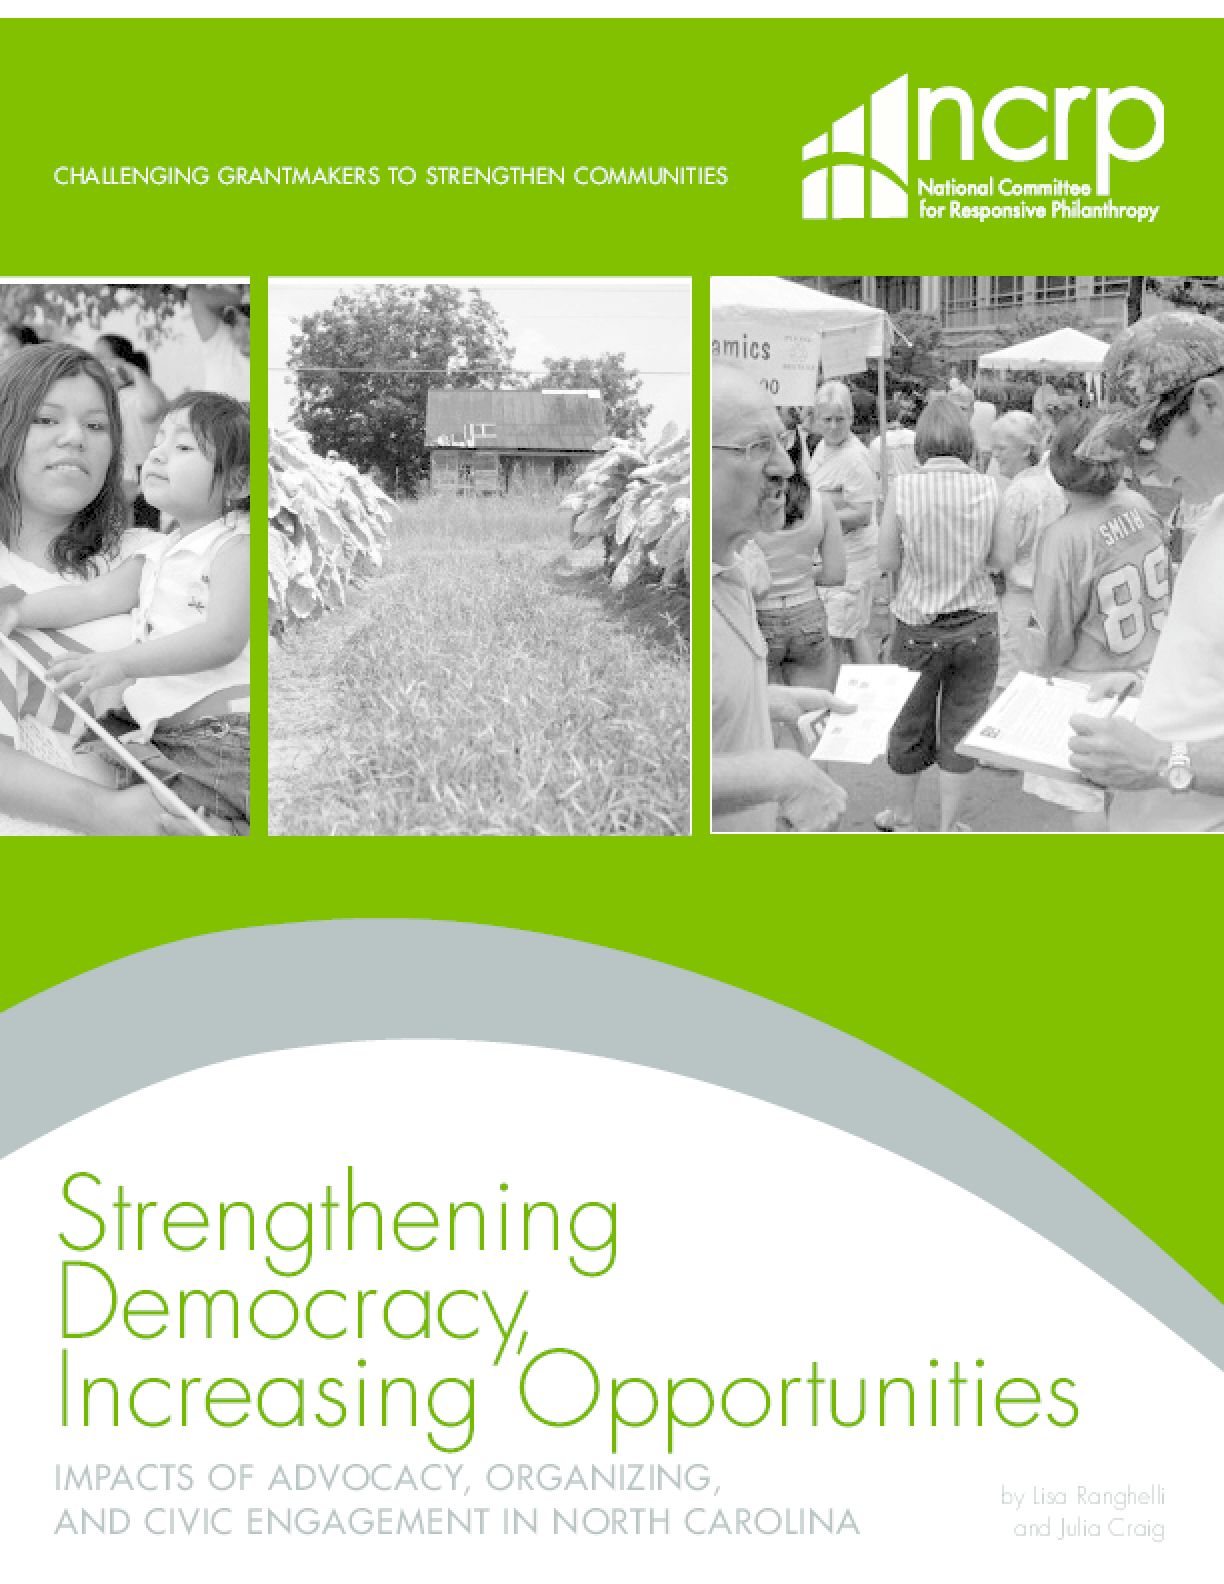 Strengthening Democracy, Increasing Opportunities: Impacts of Advocacy, Organizing and Civic Engagement in North Carolina